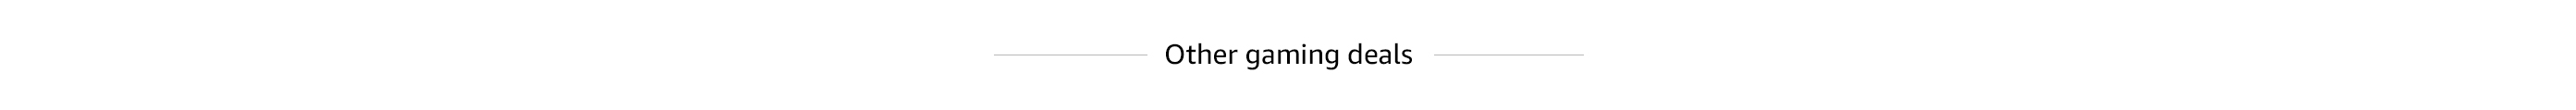 Other gaming deals